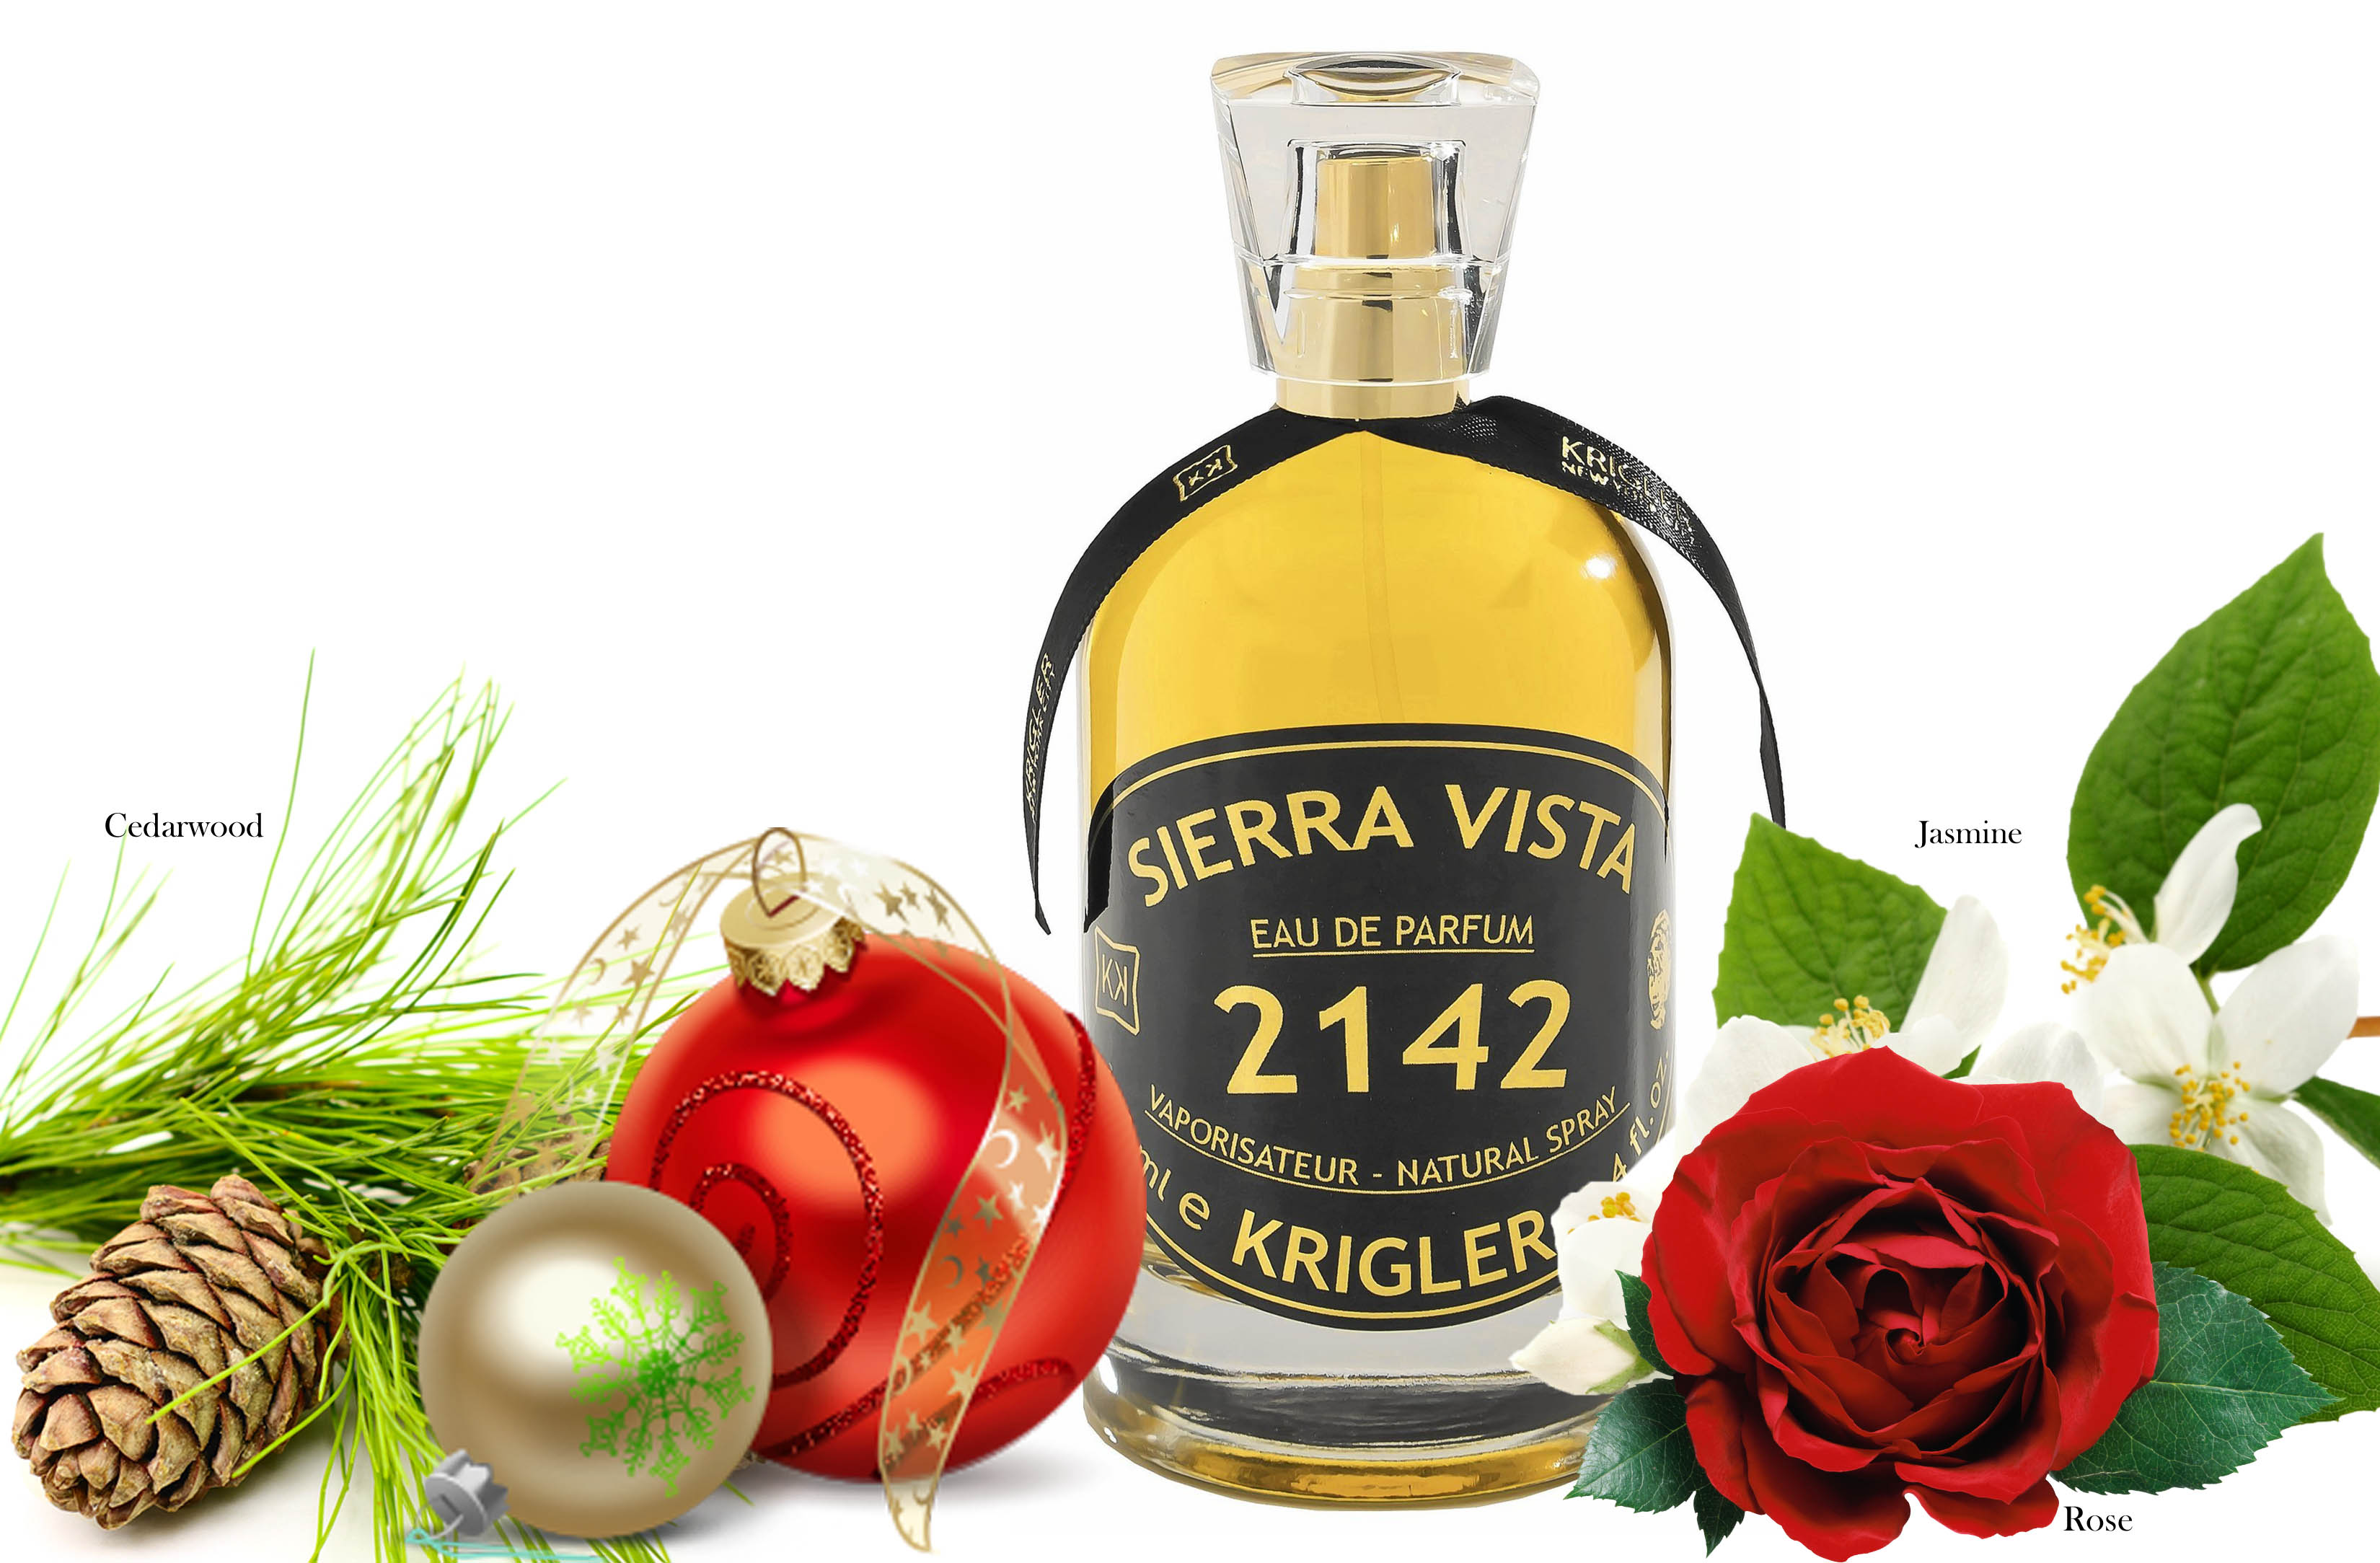 Krigler fragrances, Sierra Vista 2142, holiday gift idea